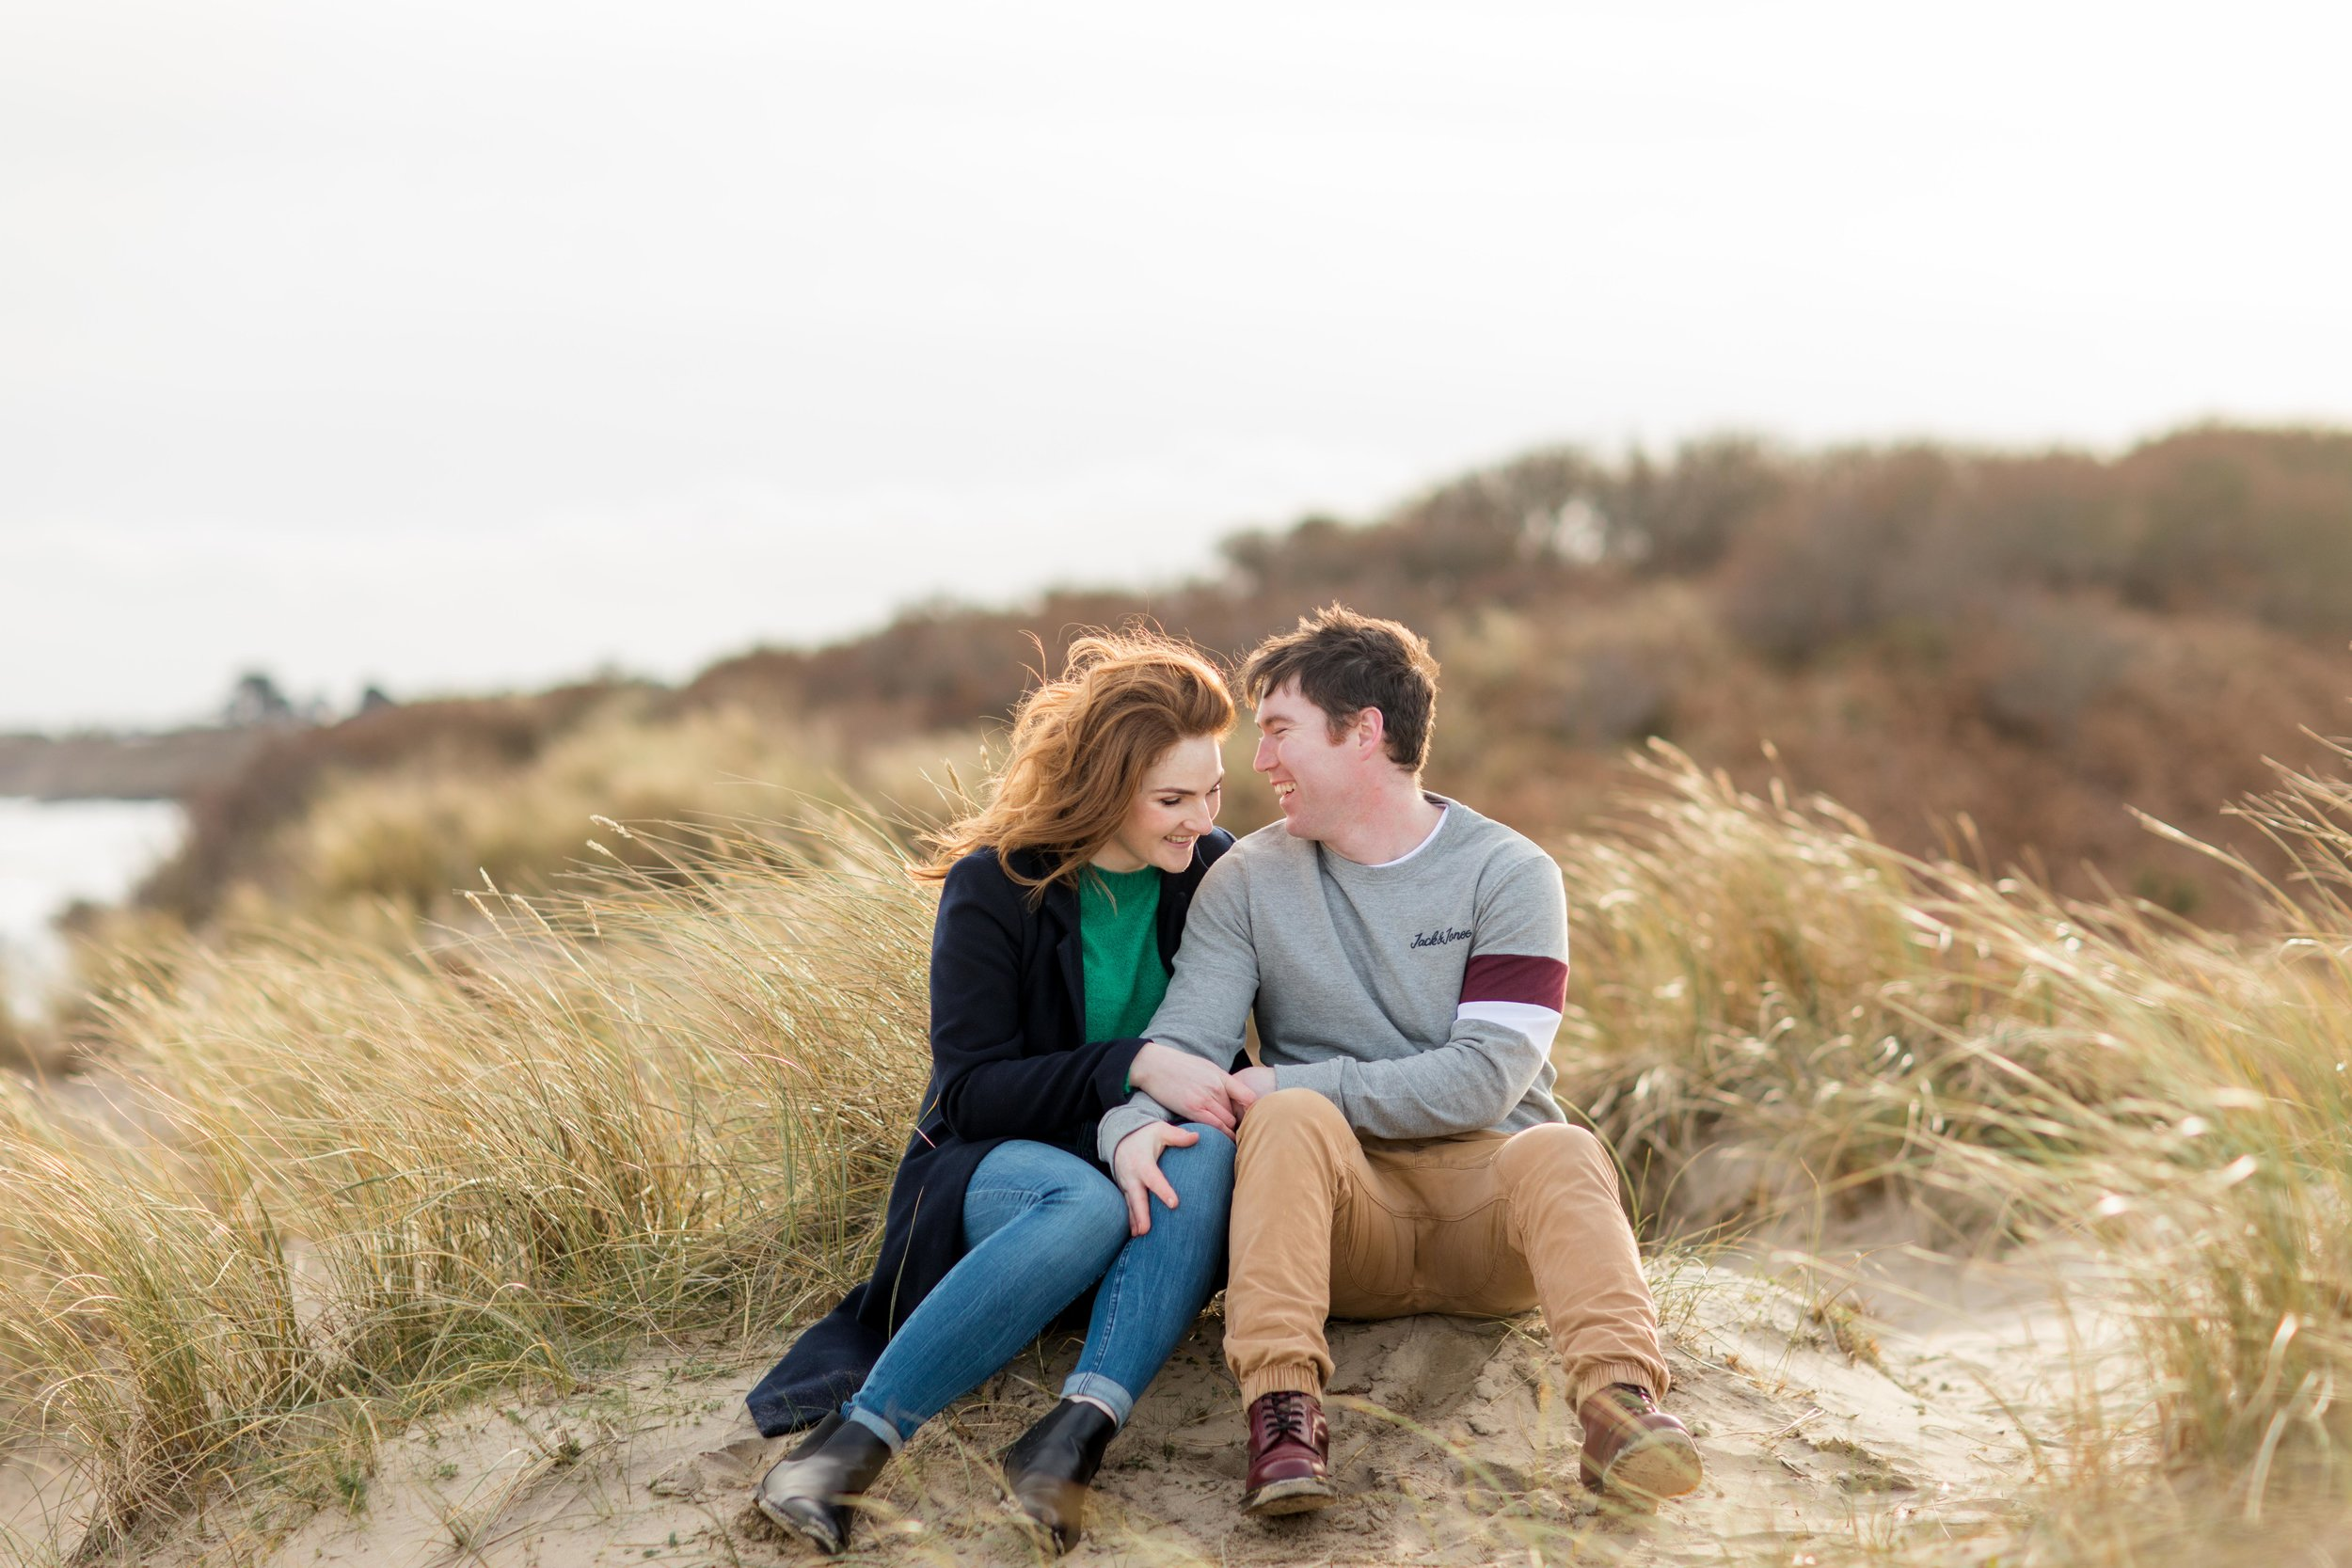 a couple posing for an engagement photoshoot sitting down on a sand dune in brittas bay beach in ireland